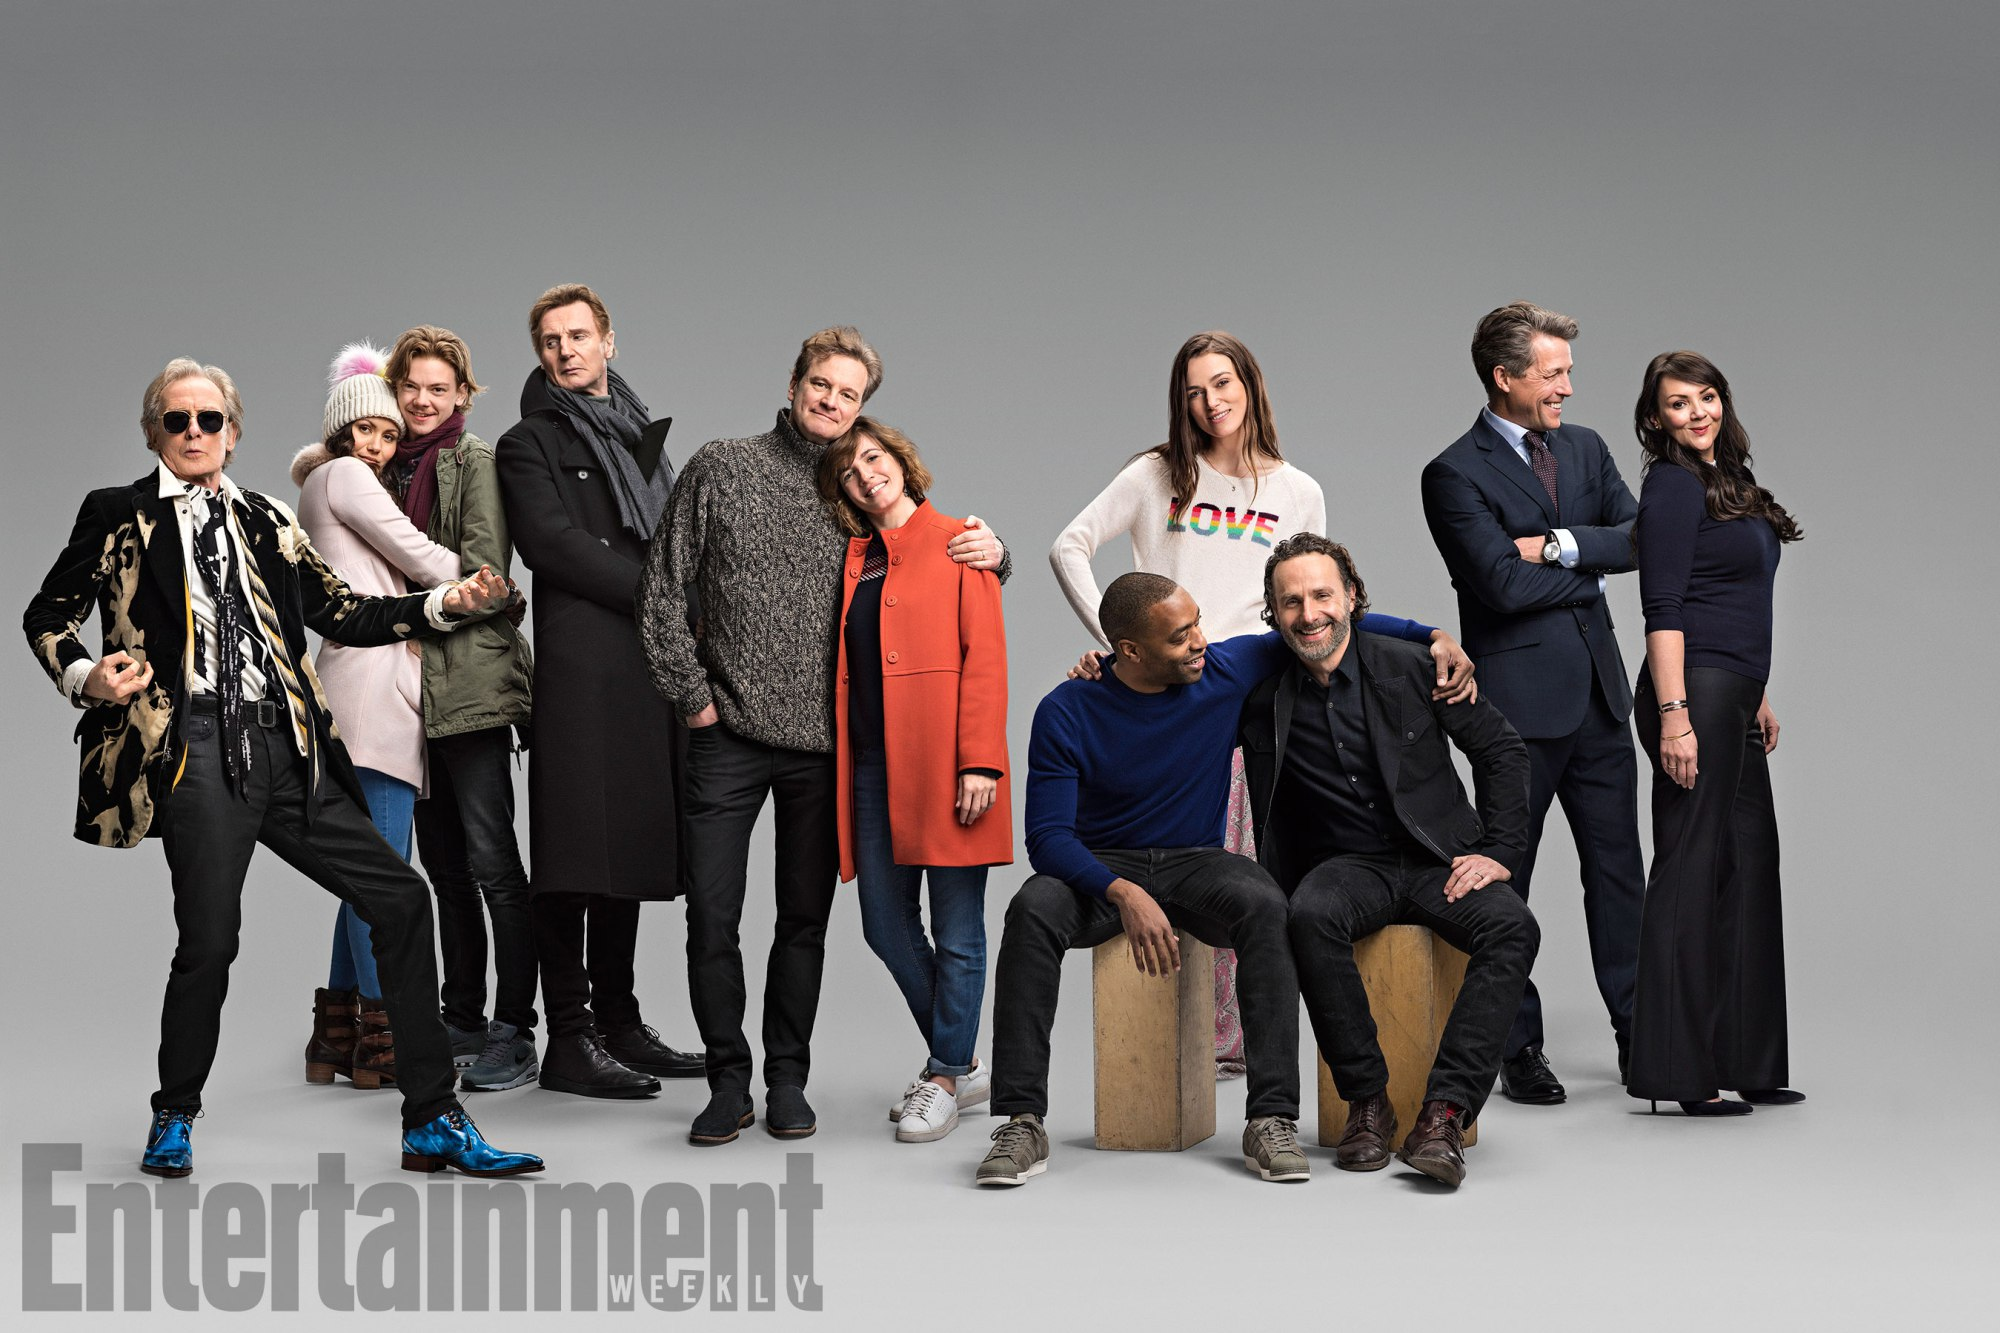 FOTO E TRAILER DEL MINI-SEQUEL DI LOVE ACTUALLY